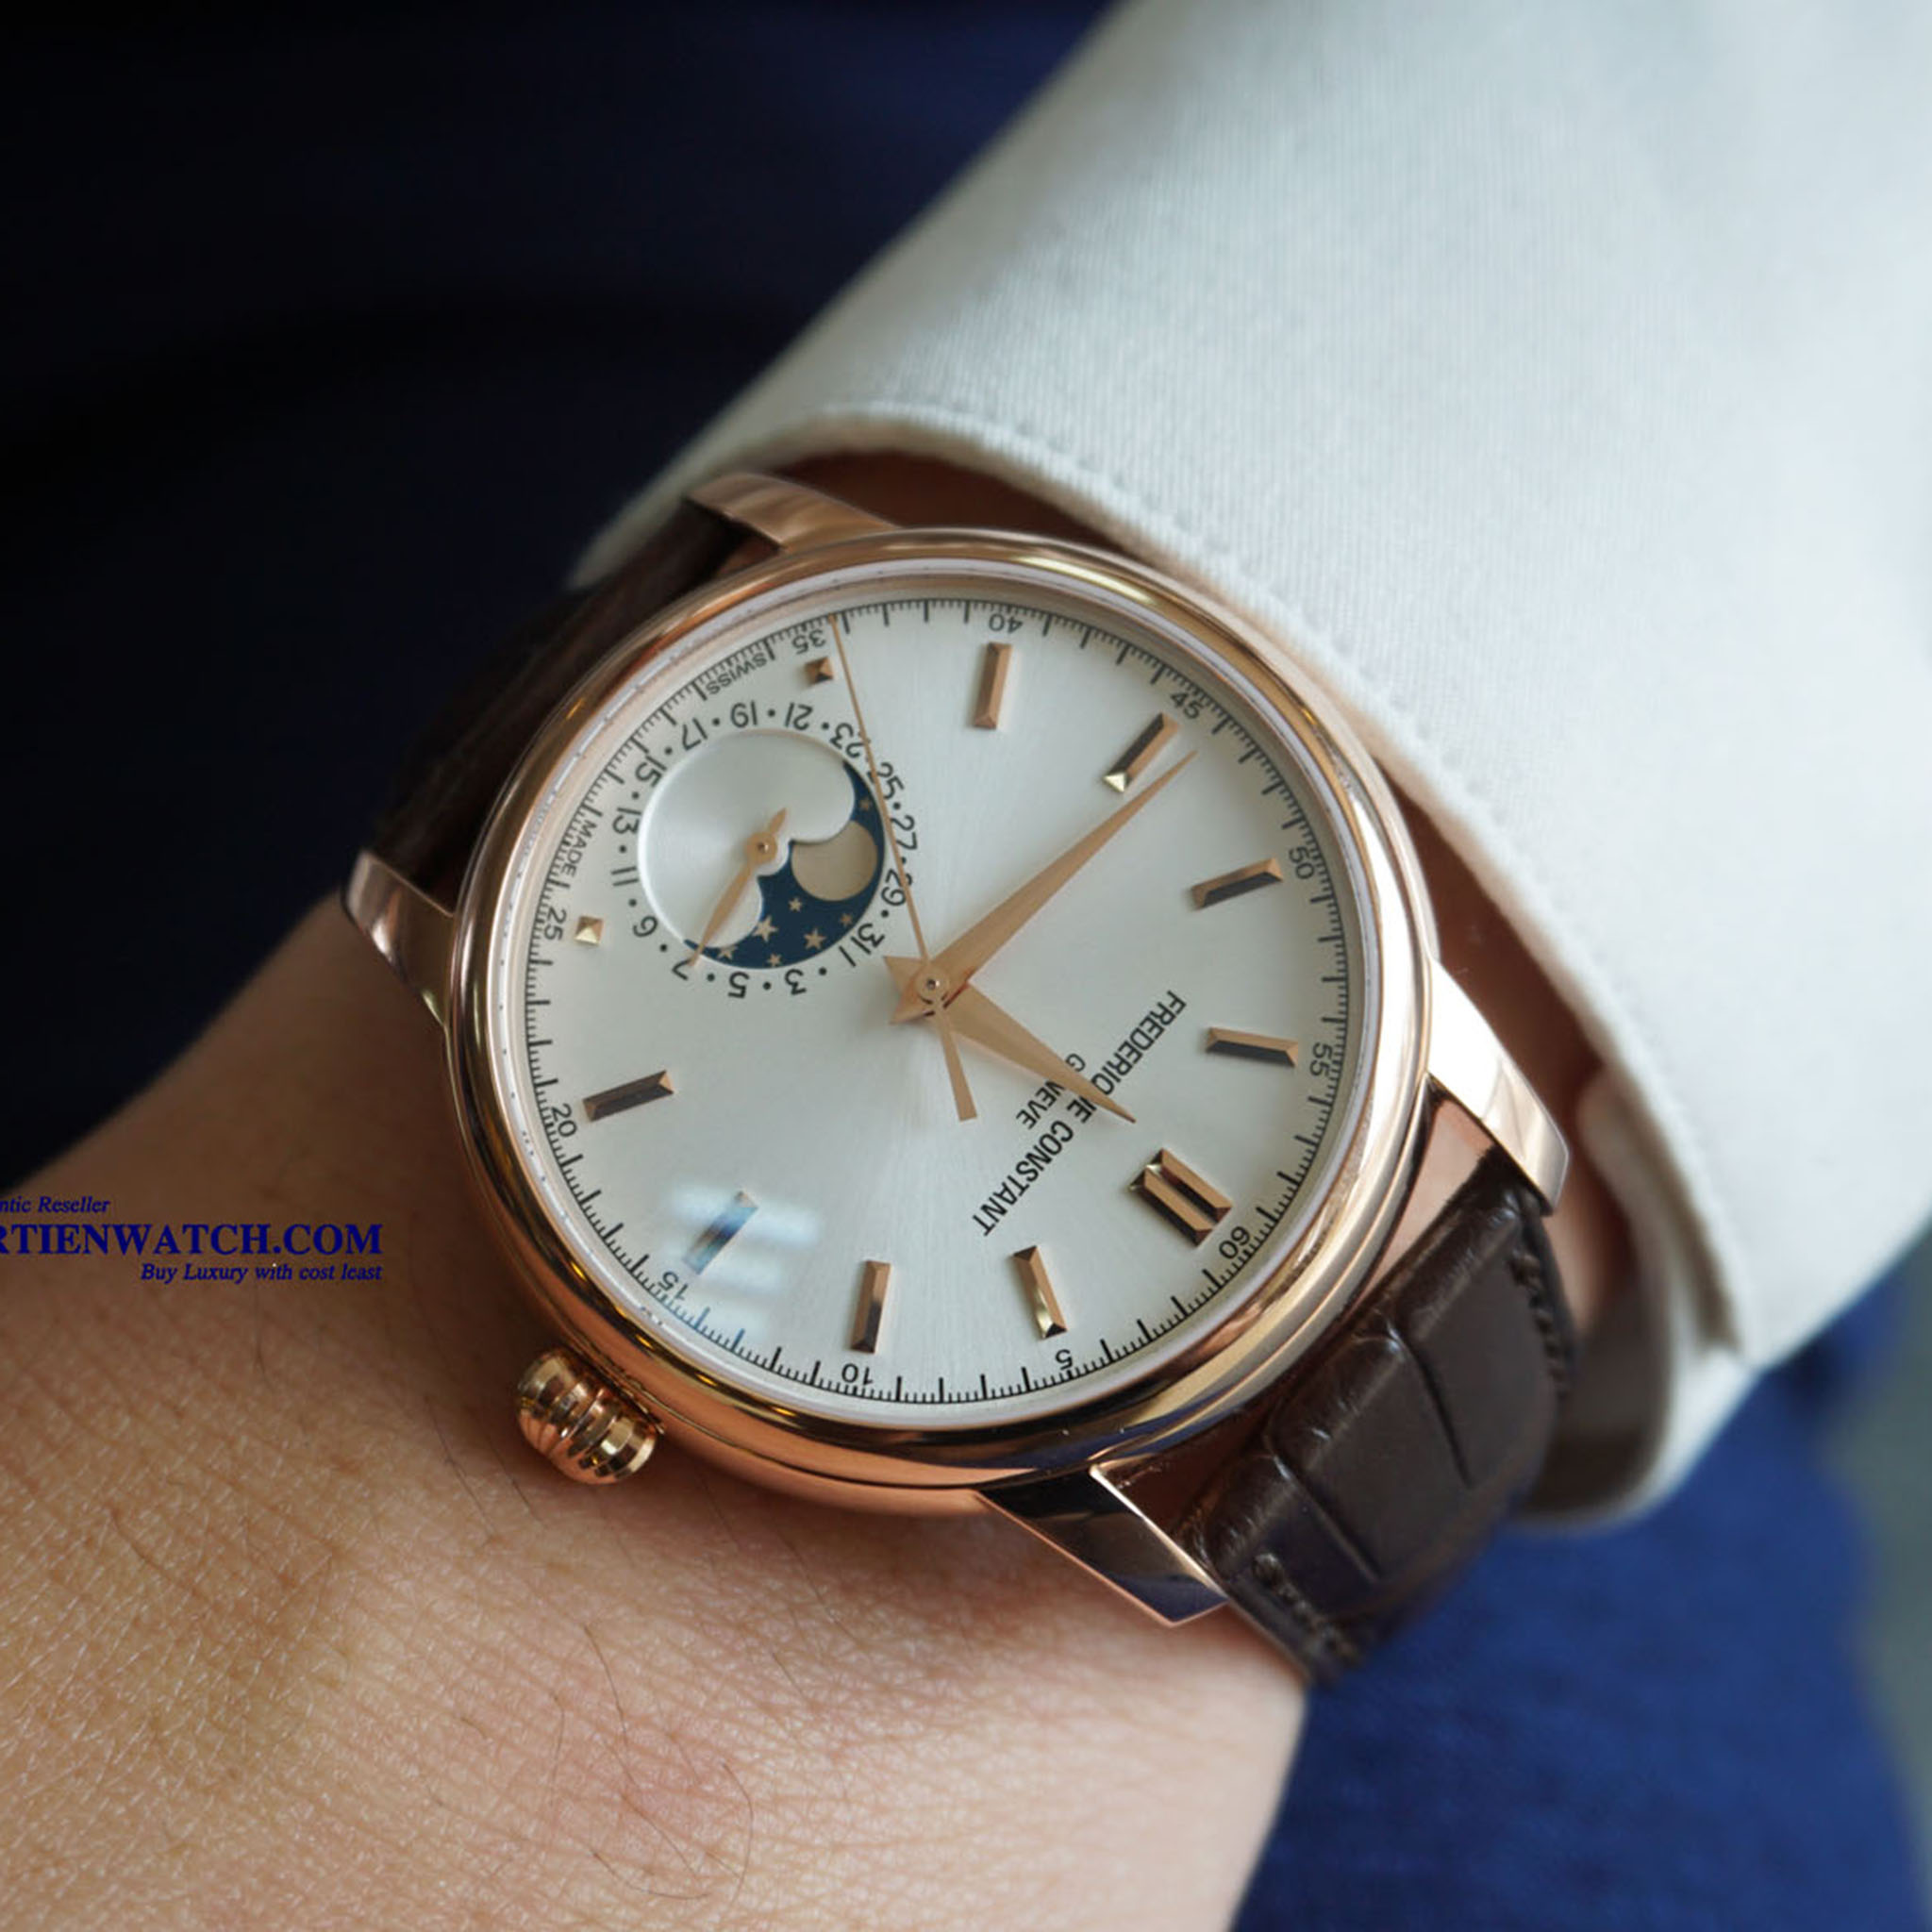 FREDERIQUE CONSTANT MOONPHASE AUTOMATIC 18K ROSE GOLD PLATED LEATHER STRAPS FC-715V4H4 - Thép không rỉ bọc vàng 18k